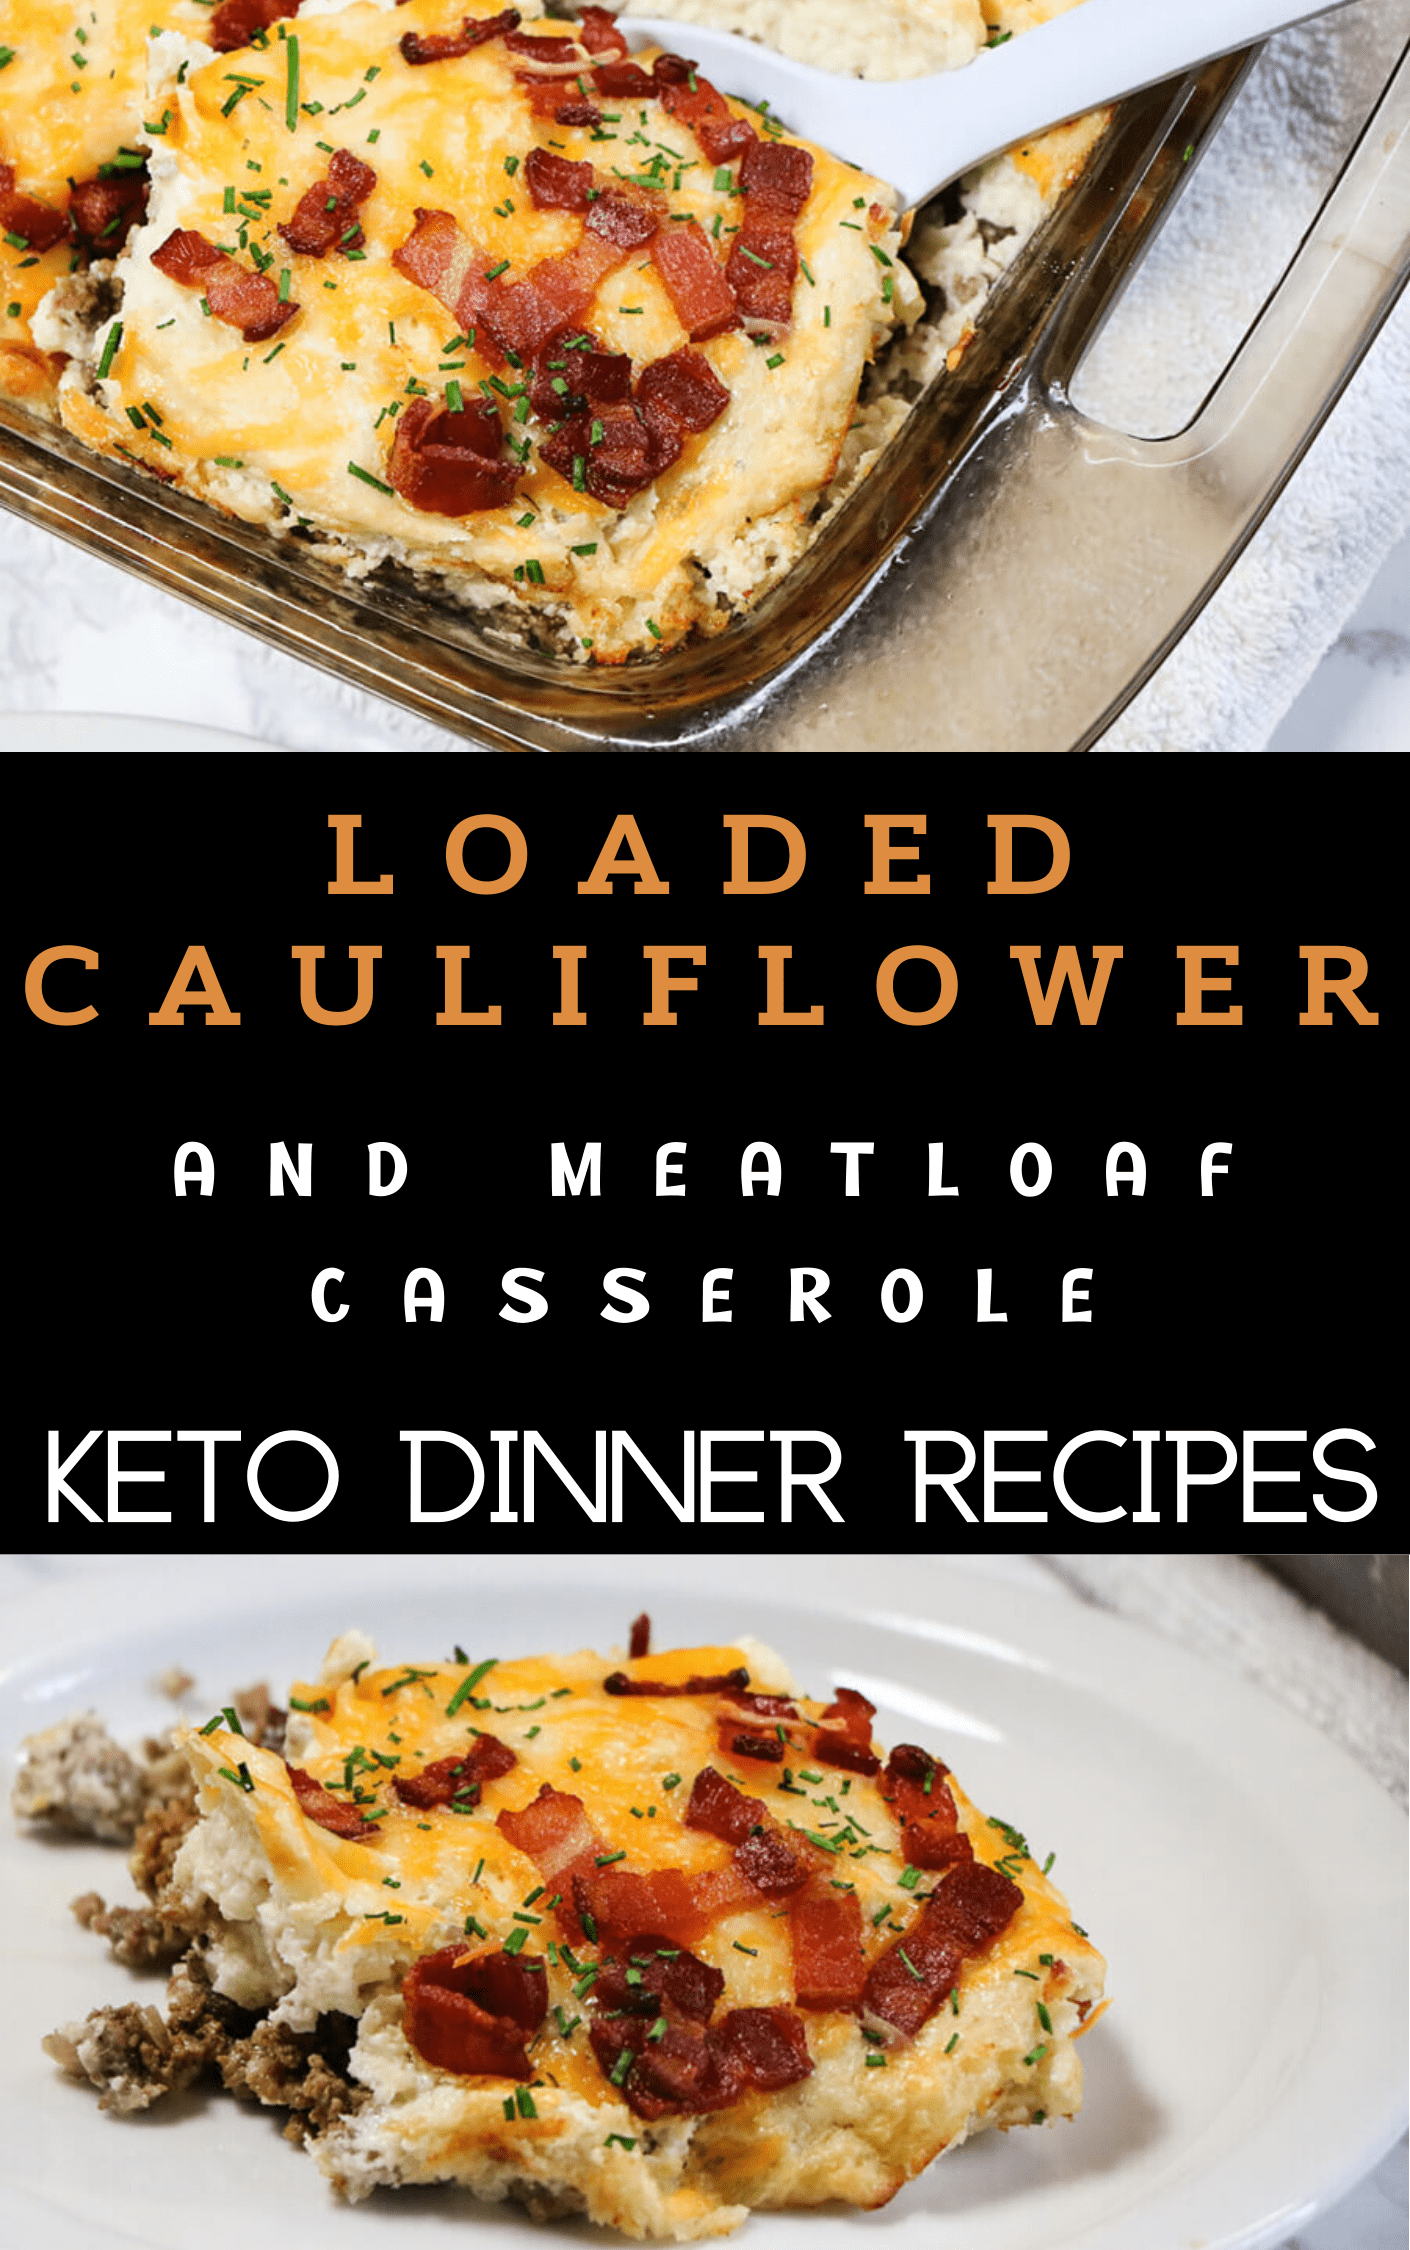 LOADED CAULIFLOWER AND MEATLOAF CASSEROLE KETO DINNER RECIPES  A quick meatloaf slathered in creamy mashed cauliflower, then topped with lots of melty cheese and crisp bacon. ... To make things easy, I used frozen cauliflower for this dish. ... Mix the crushed pork rinds and egg into the ground beef mixture.  You've visited this page 2 times.  LOADED CAULIFLOWER  MEATLOAF CASSEROLE  KETO DINNE RRECIPES  keto  keto recipes  #LOADEDCAULIFLOWER  #MEATLOAFCASSEROLE  #KETODINNERRECIPES  #keto  #ketor